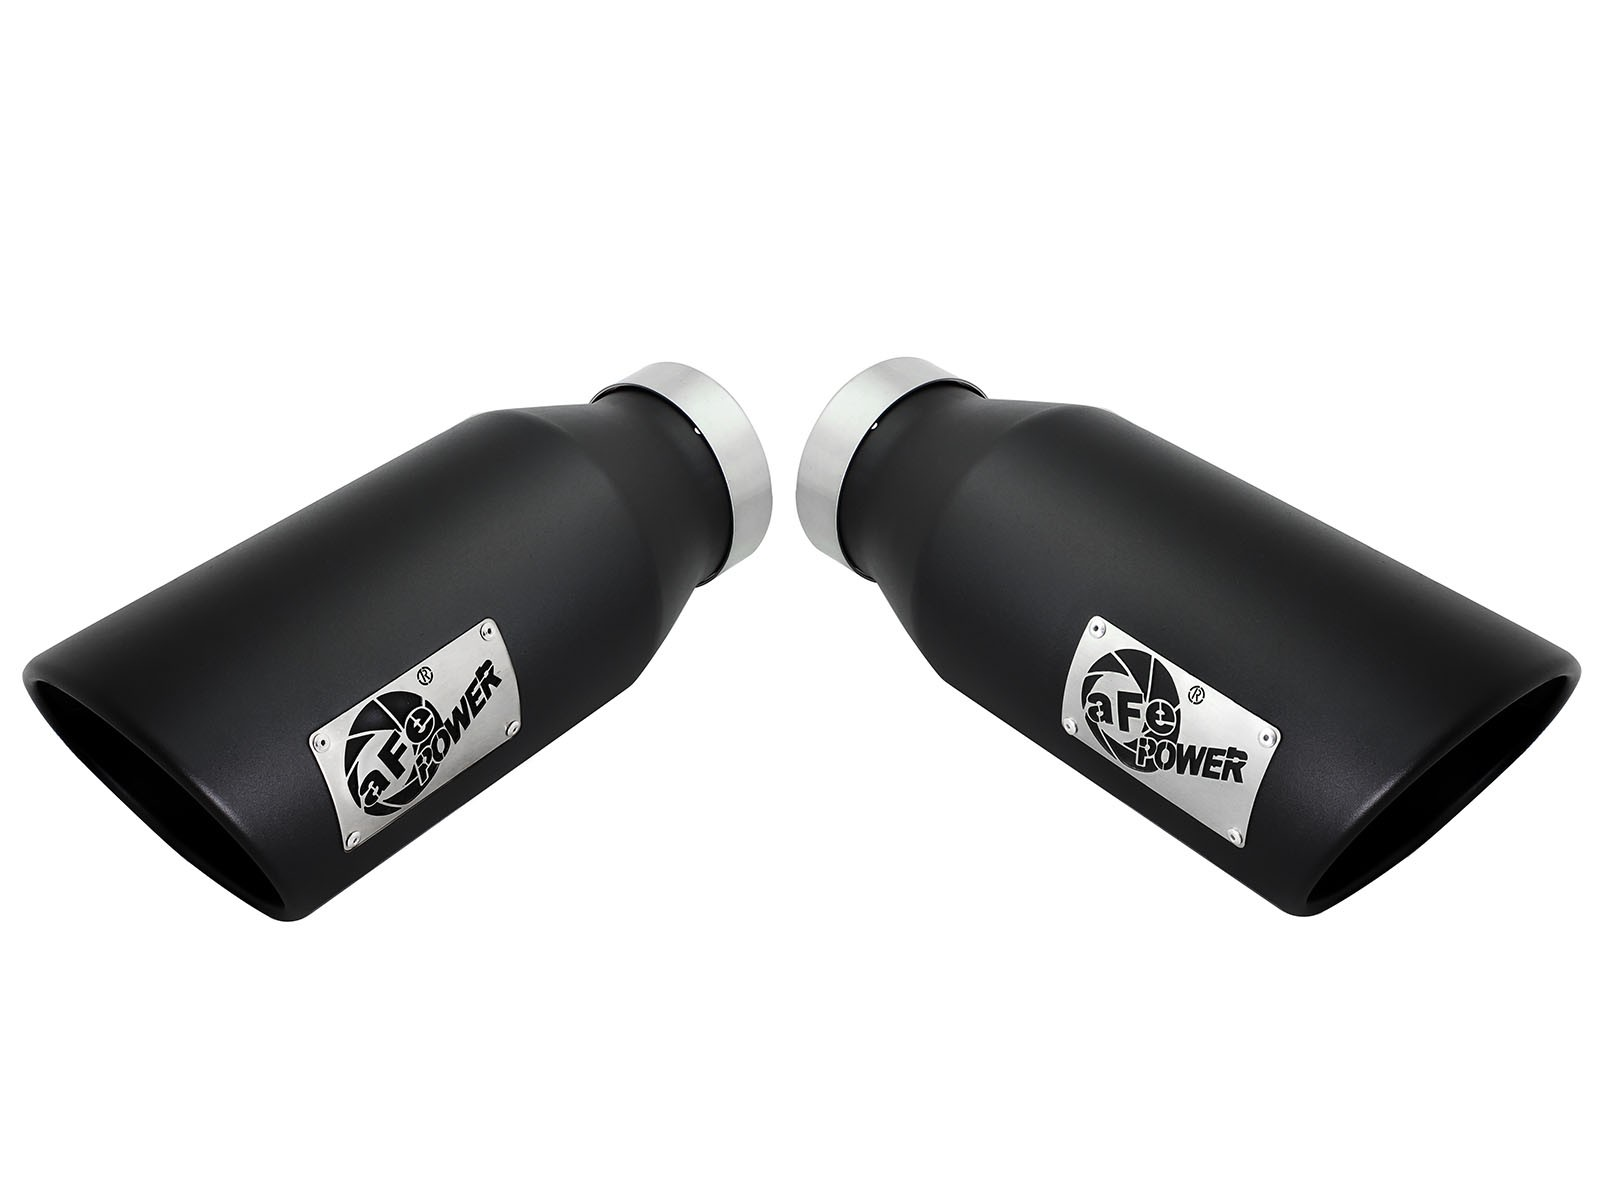 "aFe POWER 49T40606-B15 MACH Force-Xp 4"" 304 Stainless Steel Exhaust Tip"